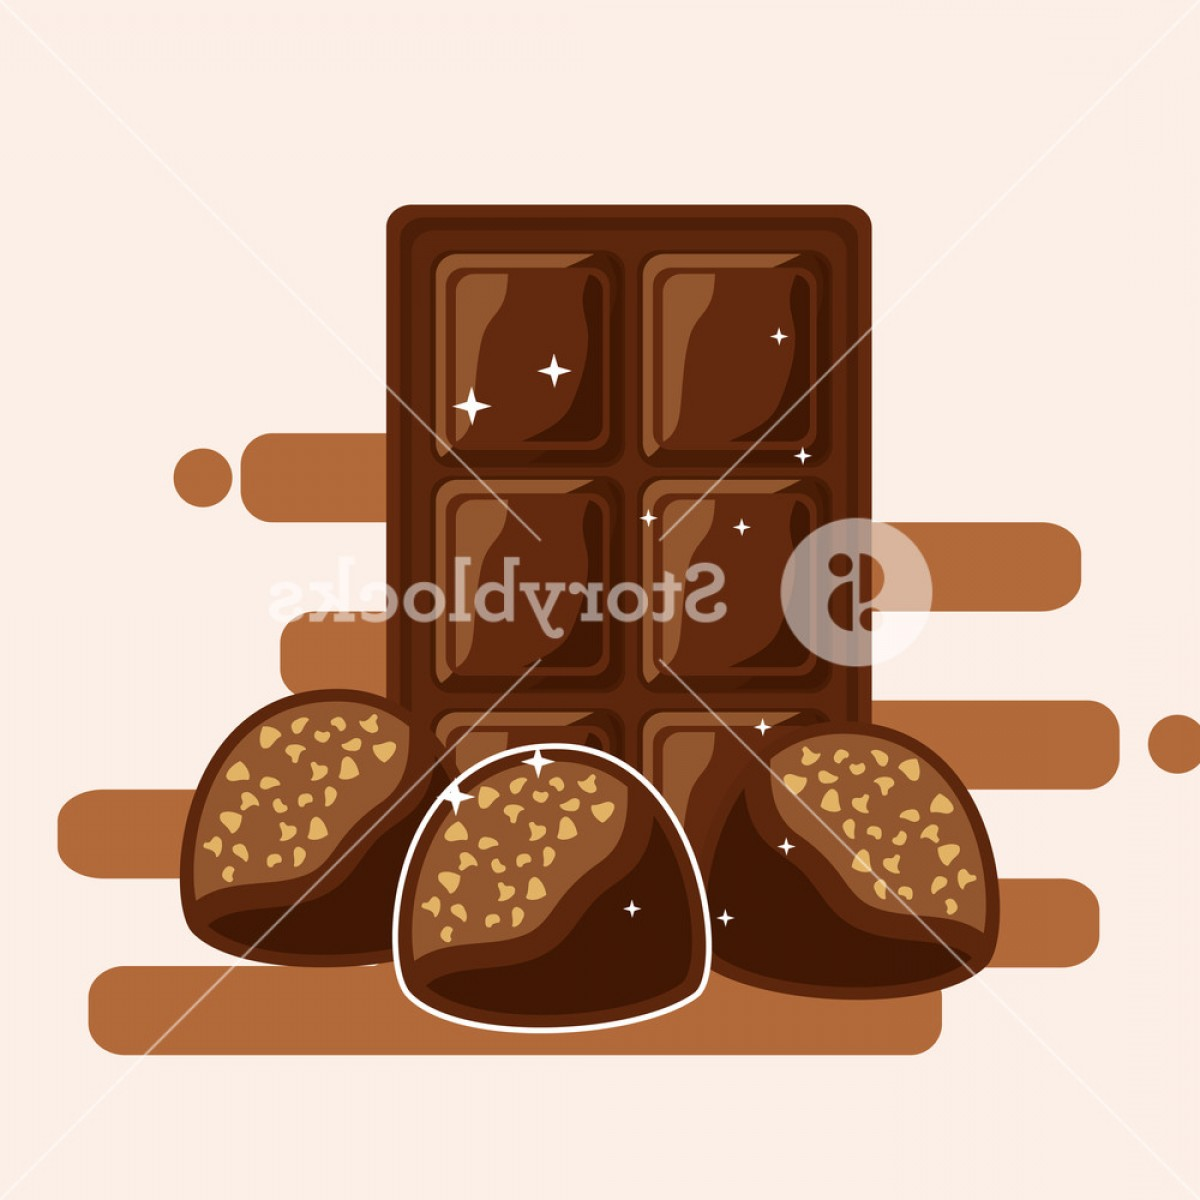 Snack Vector: Chocolate Bar And Candies With Nuts Dessert Snack Vector Illustration Rzweaagjgvwr